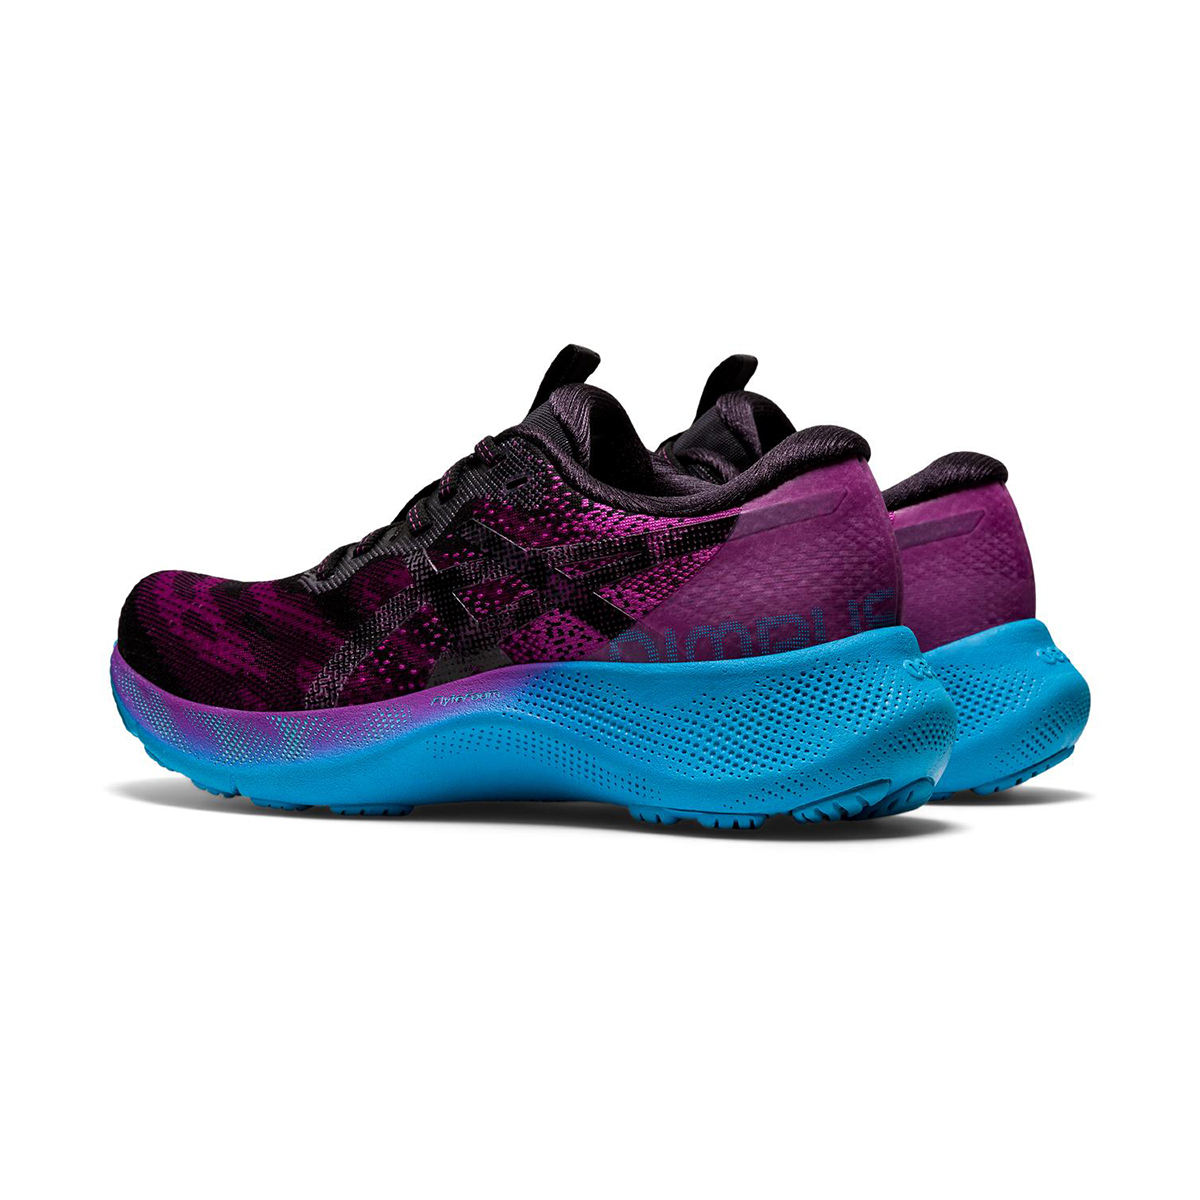 Women's Asics Gel-Nimbus Lite 2 Running Shoe - Color: Digital Grape/Black - Size: 5 - Width: Regular, Digital Grape/Black, large, image 4